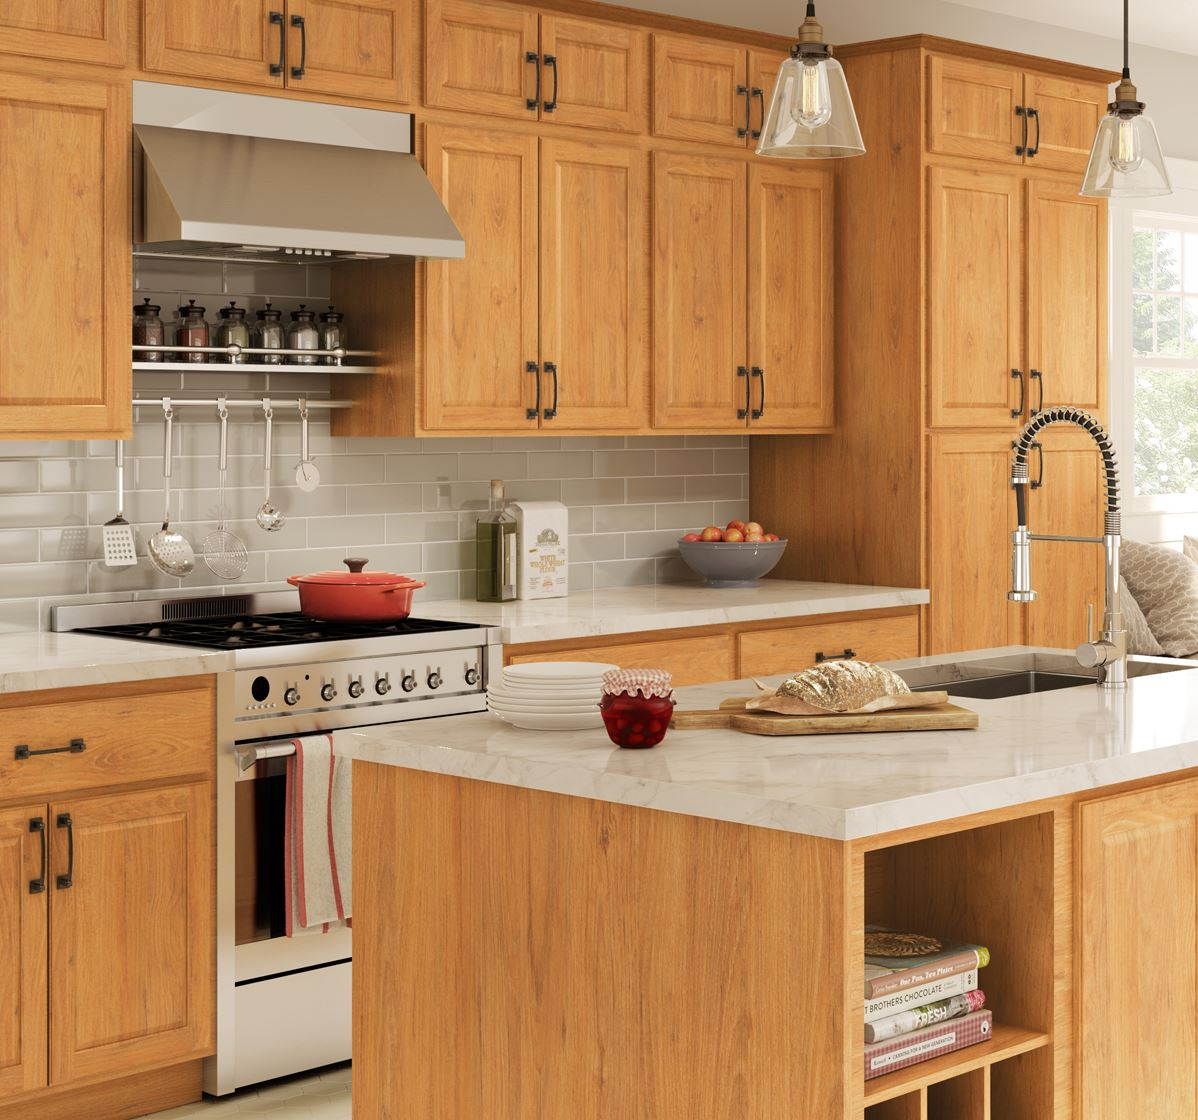 Madison Base Cabinets in Medium Oak – Kitchen – The Home Depot